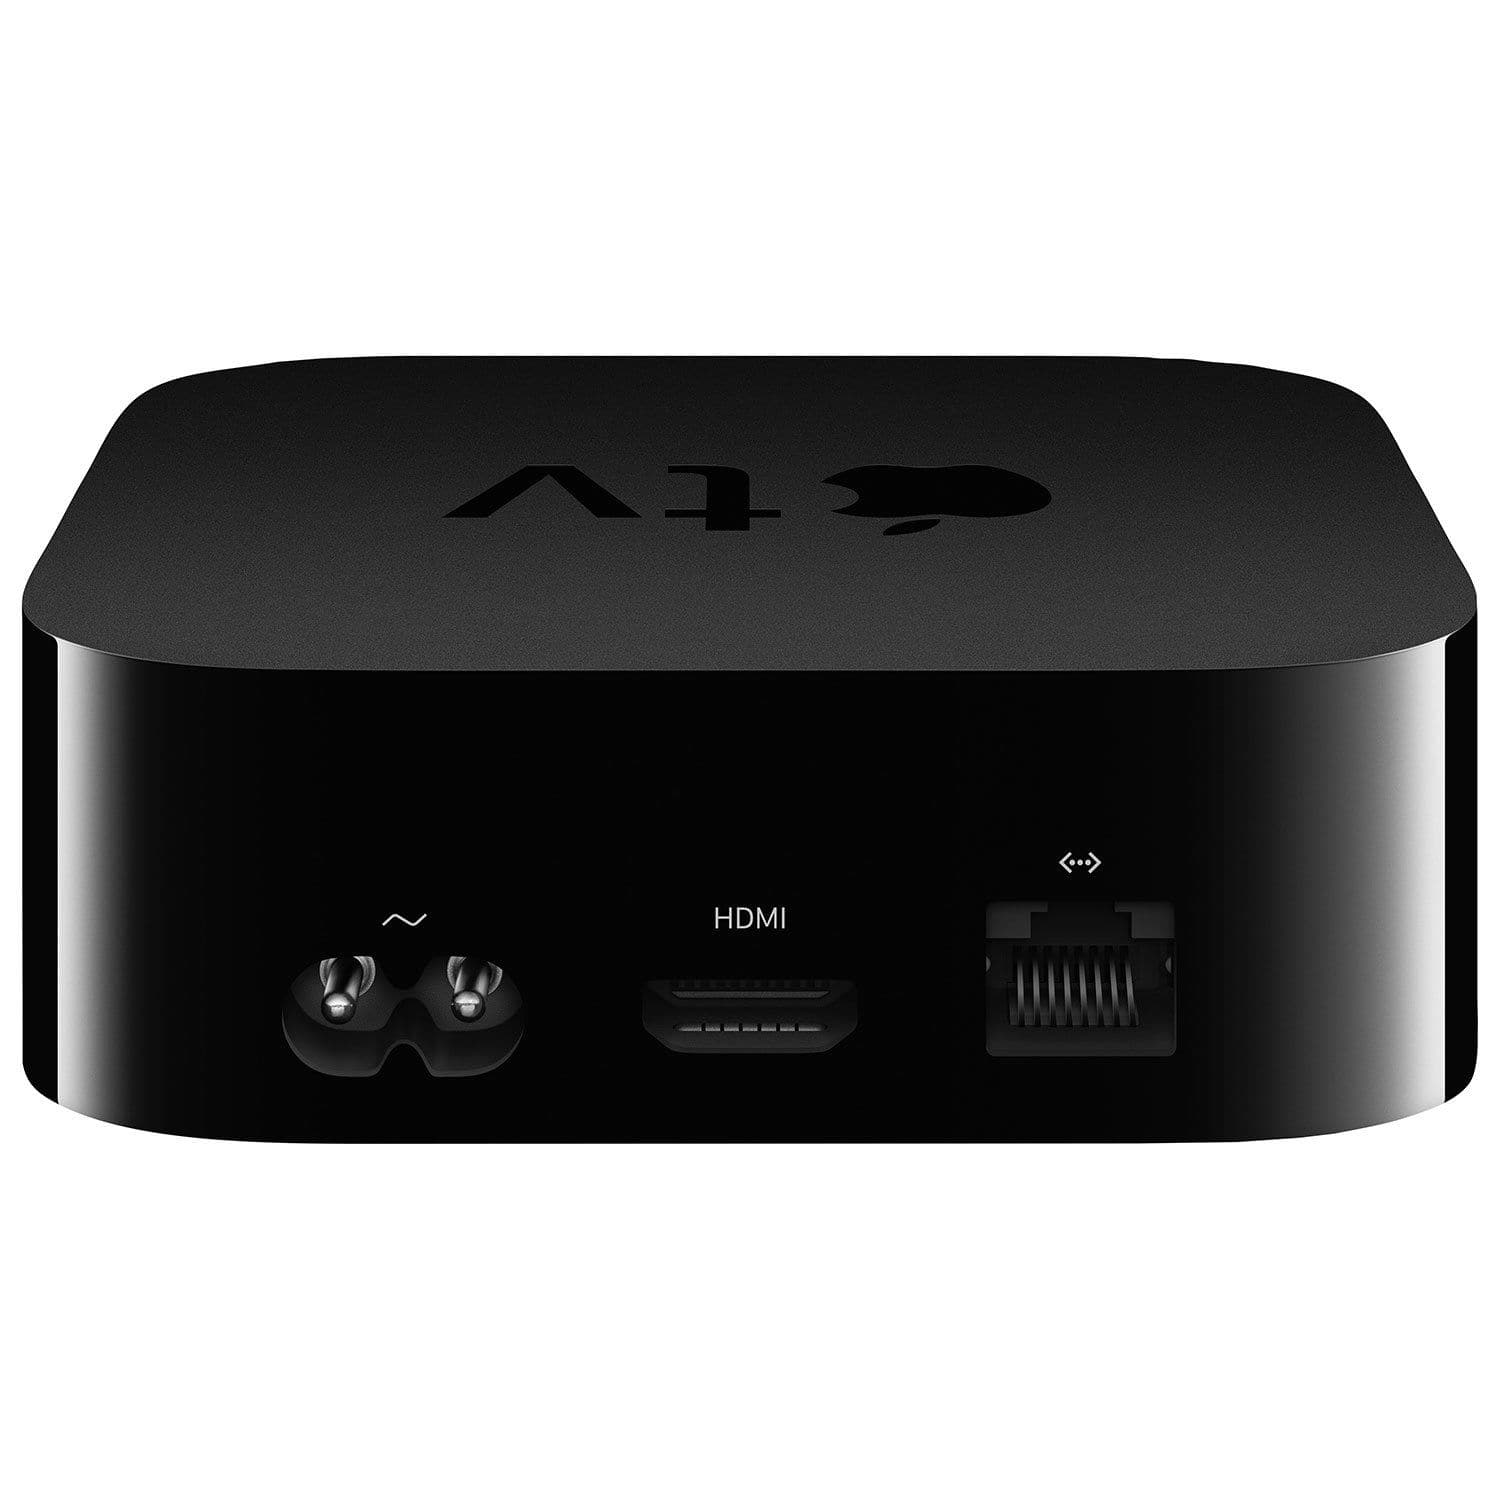 Apple tv 4th generation release date in Melbourne